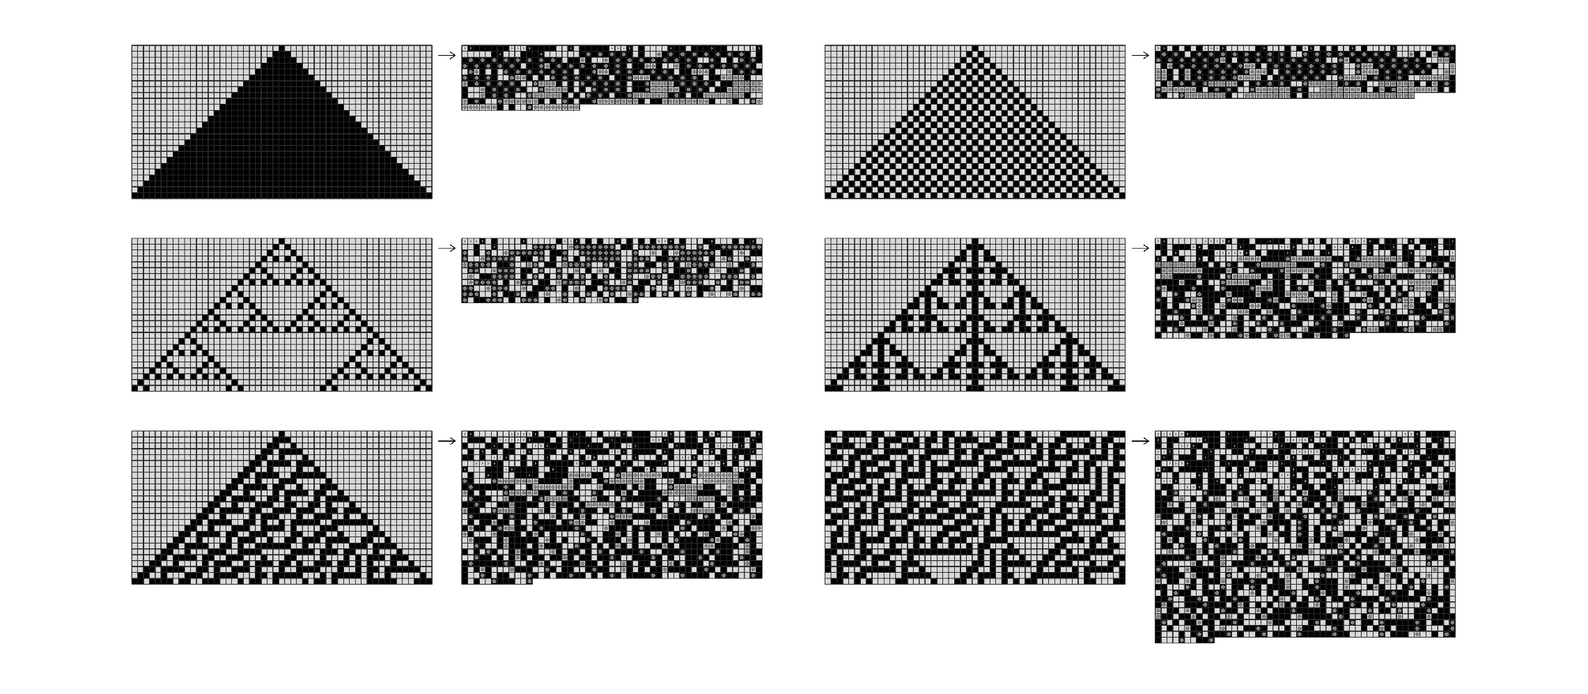 Huffman encoding with blocks of length 6 applied to patterns produced by cellular automata